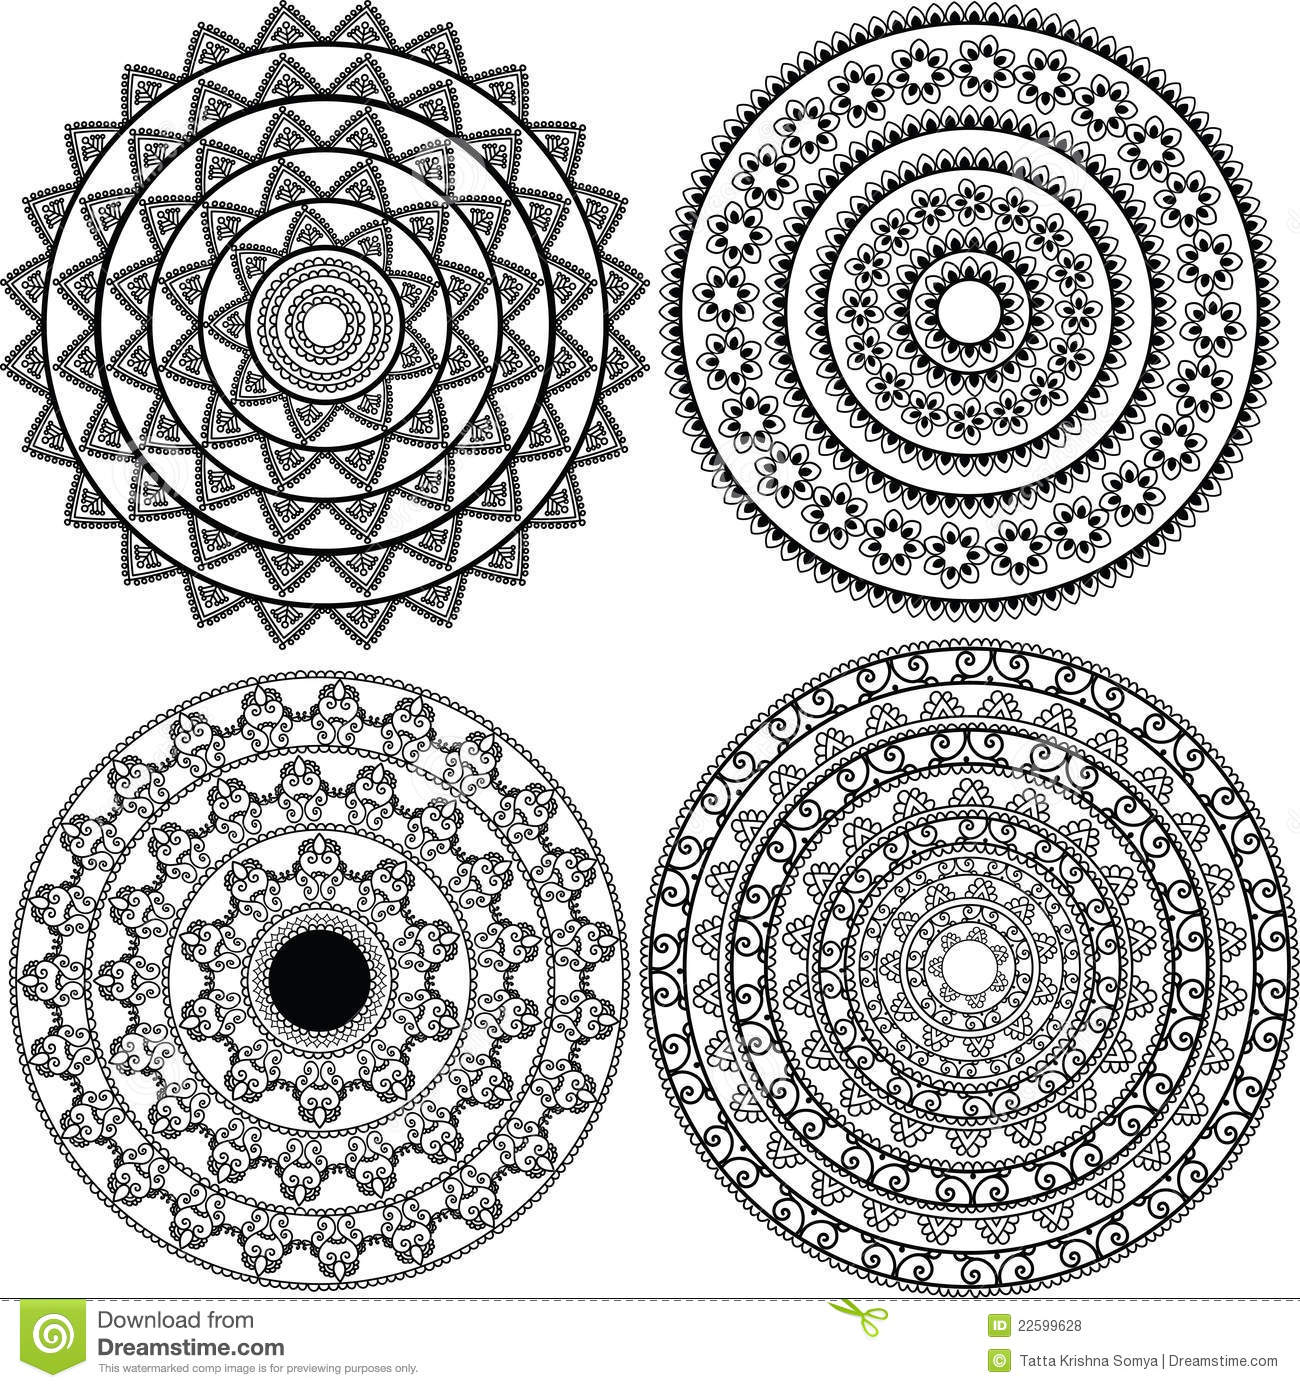 Detailed Mandala Design Royalty Free Stock Photos - Image: 22599628